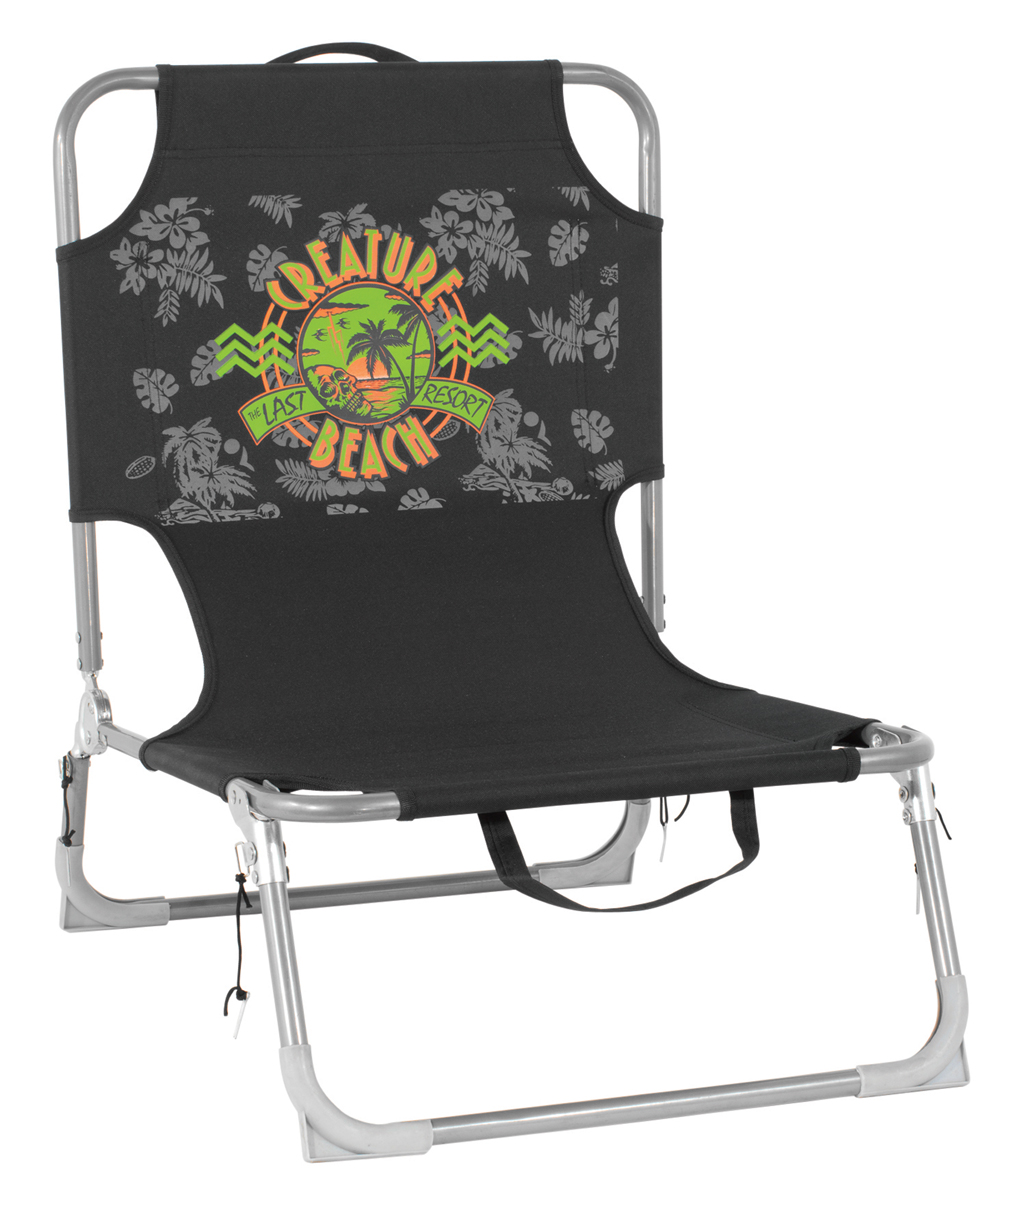 CR_lastresort_foldingchair_front